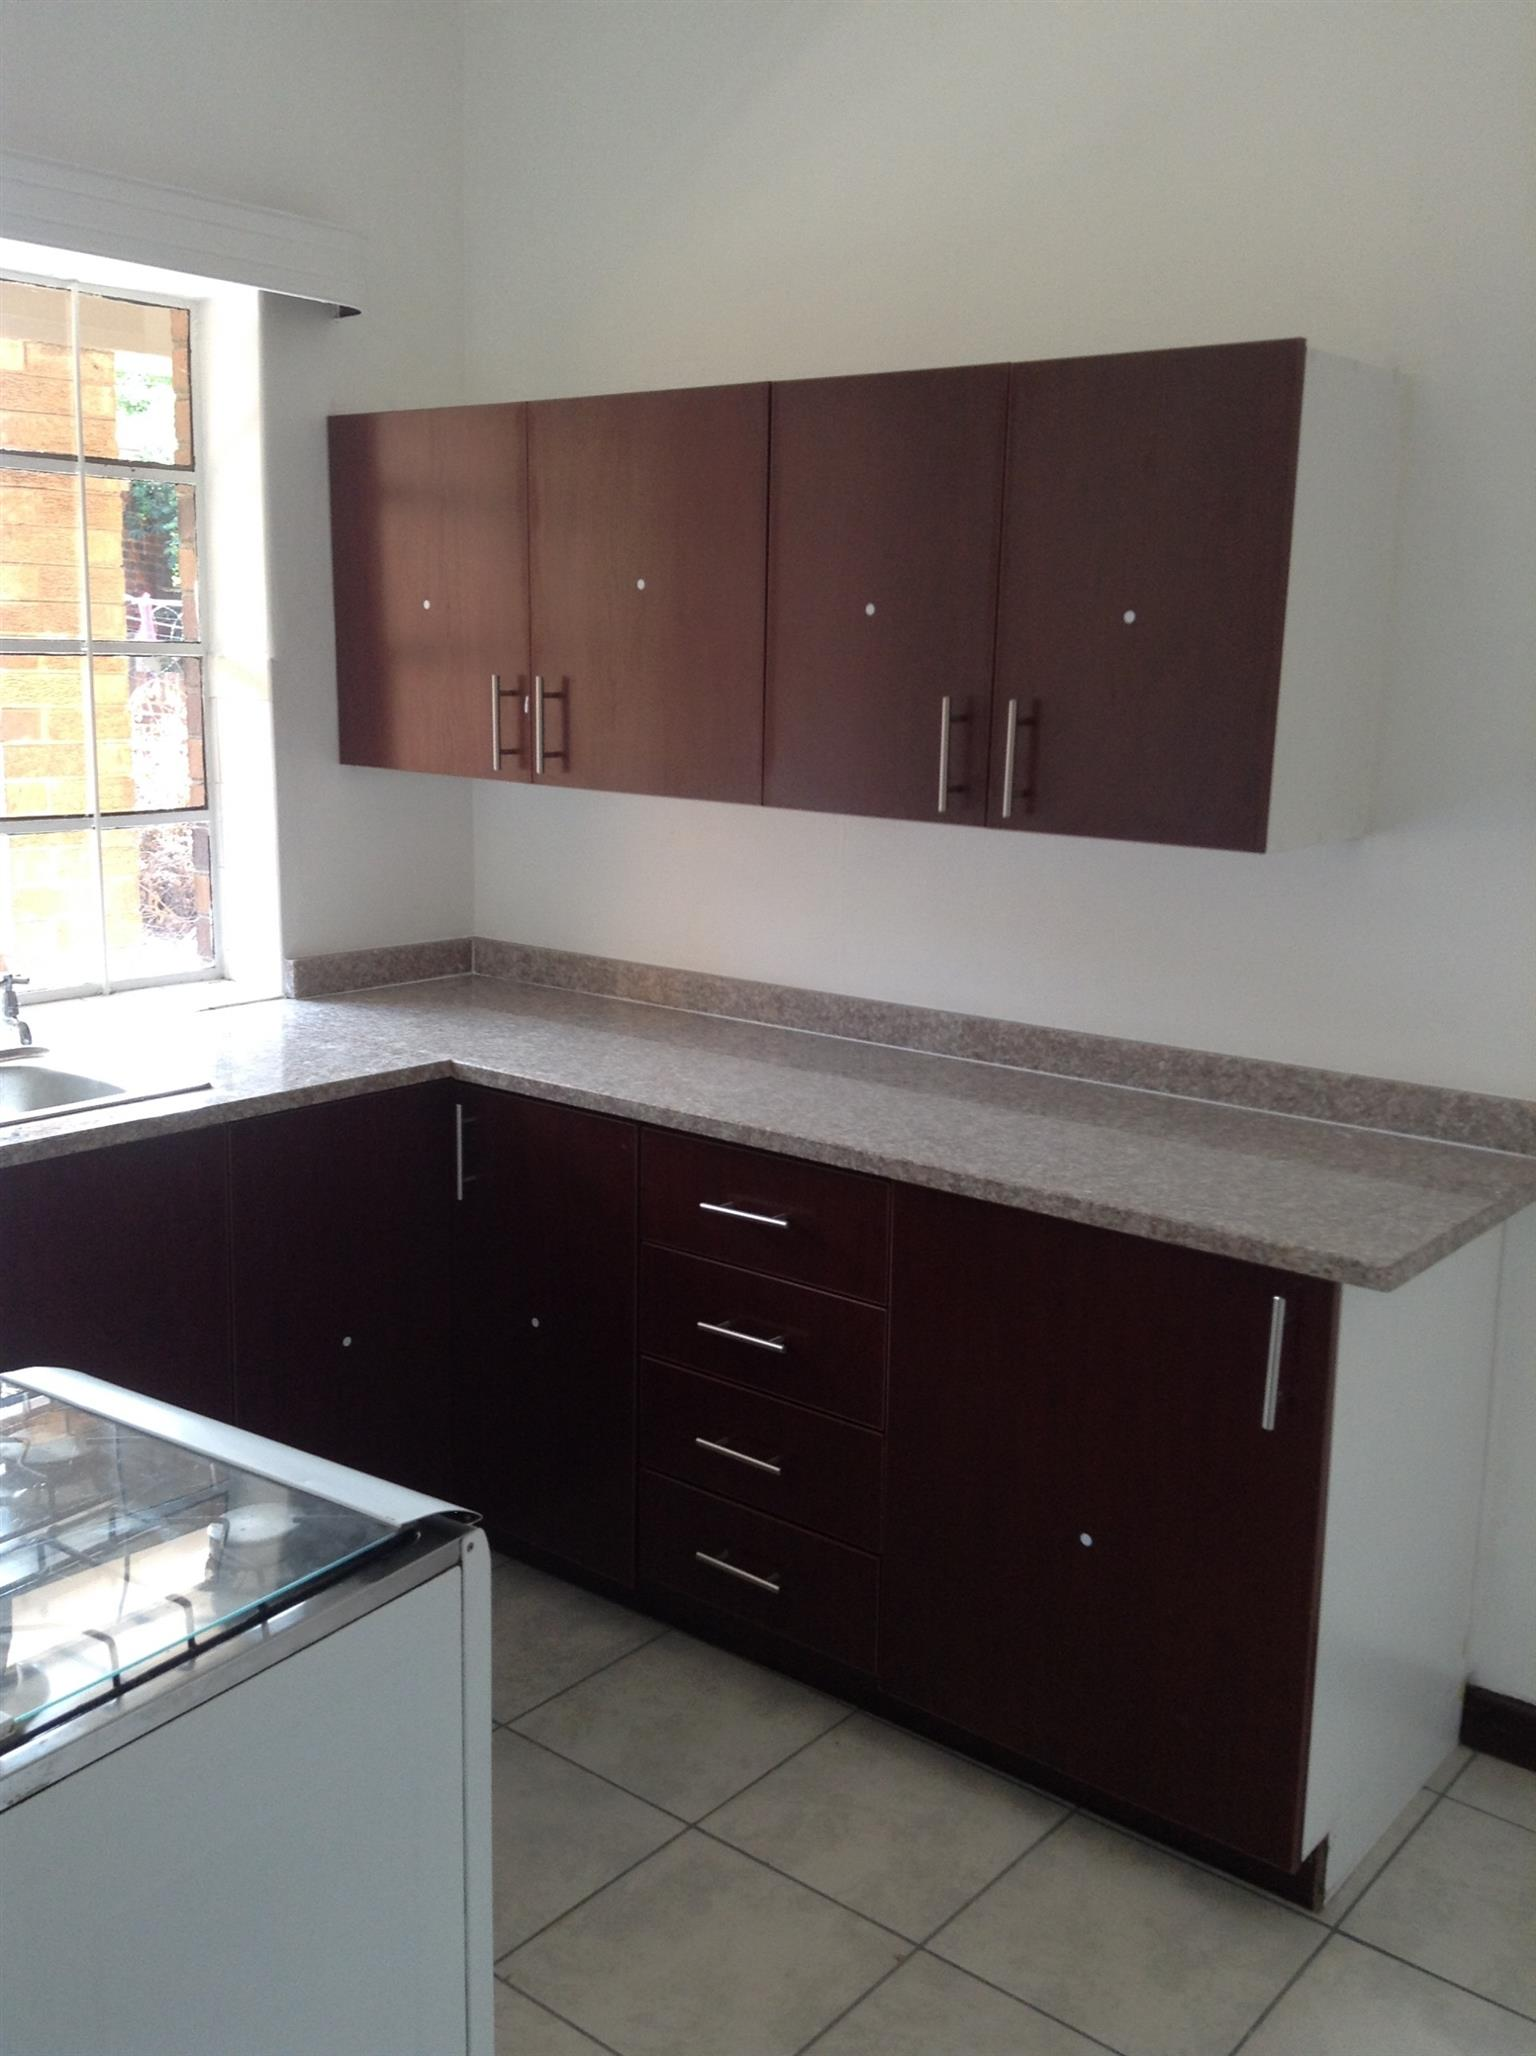 Bordeaux 3bedroomed flat to rent for R6000